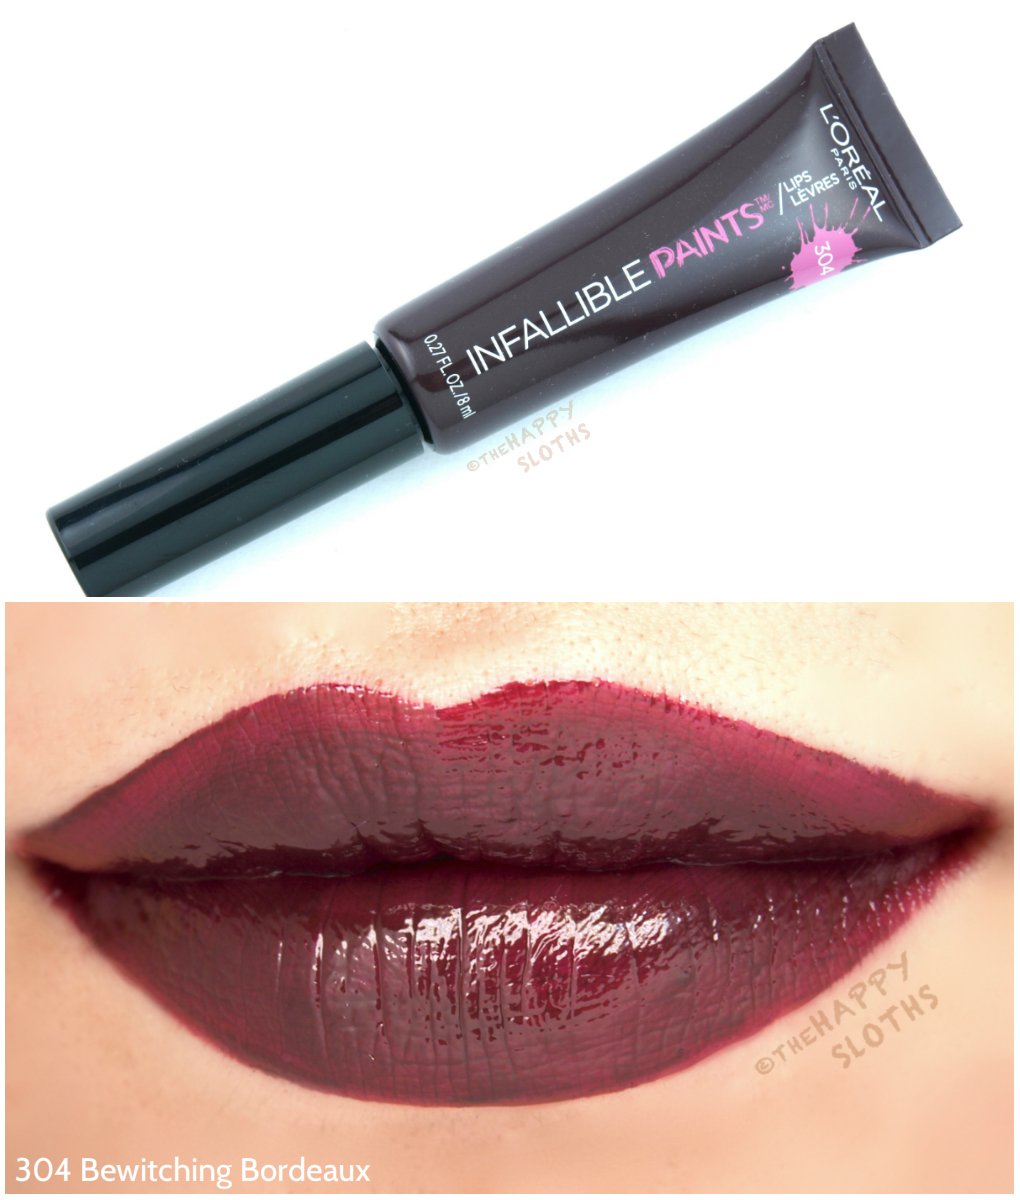 L'Oreal Infallible Lip Paints 304 Bewitching Bordeaux